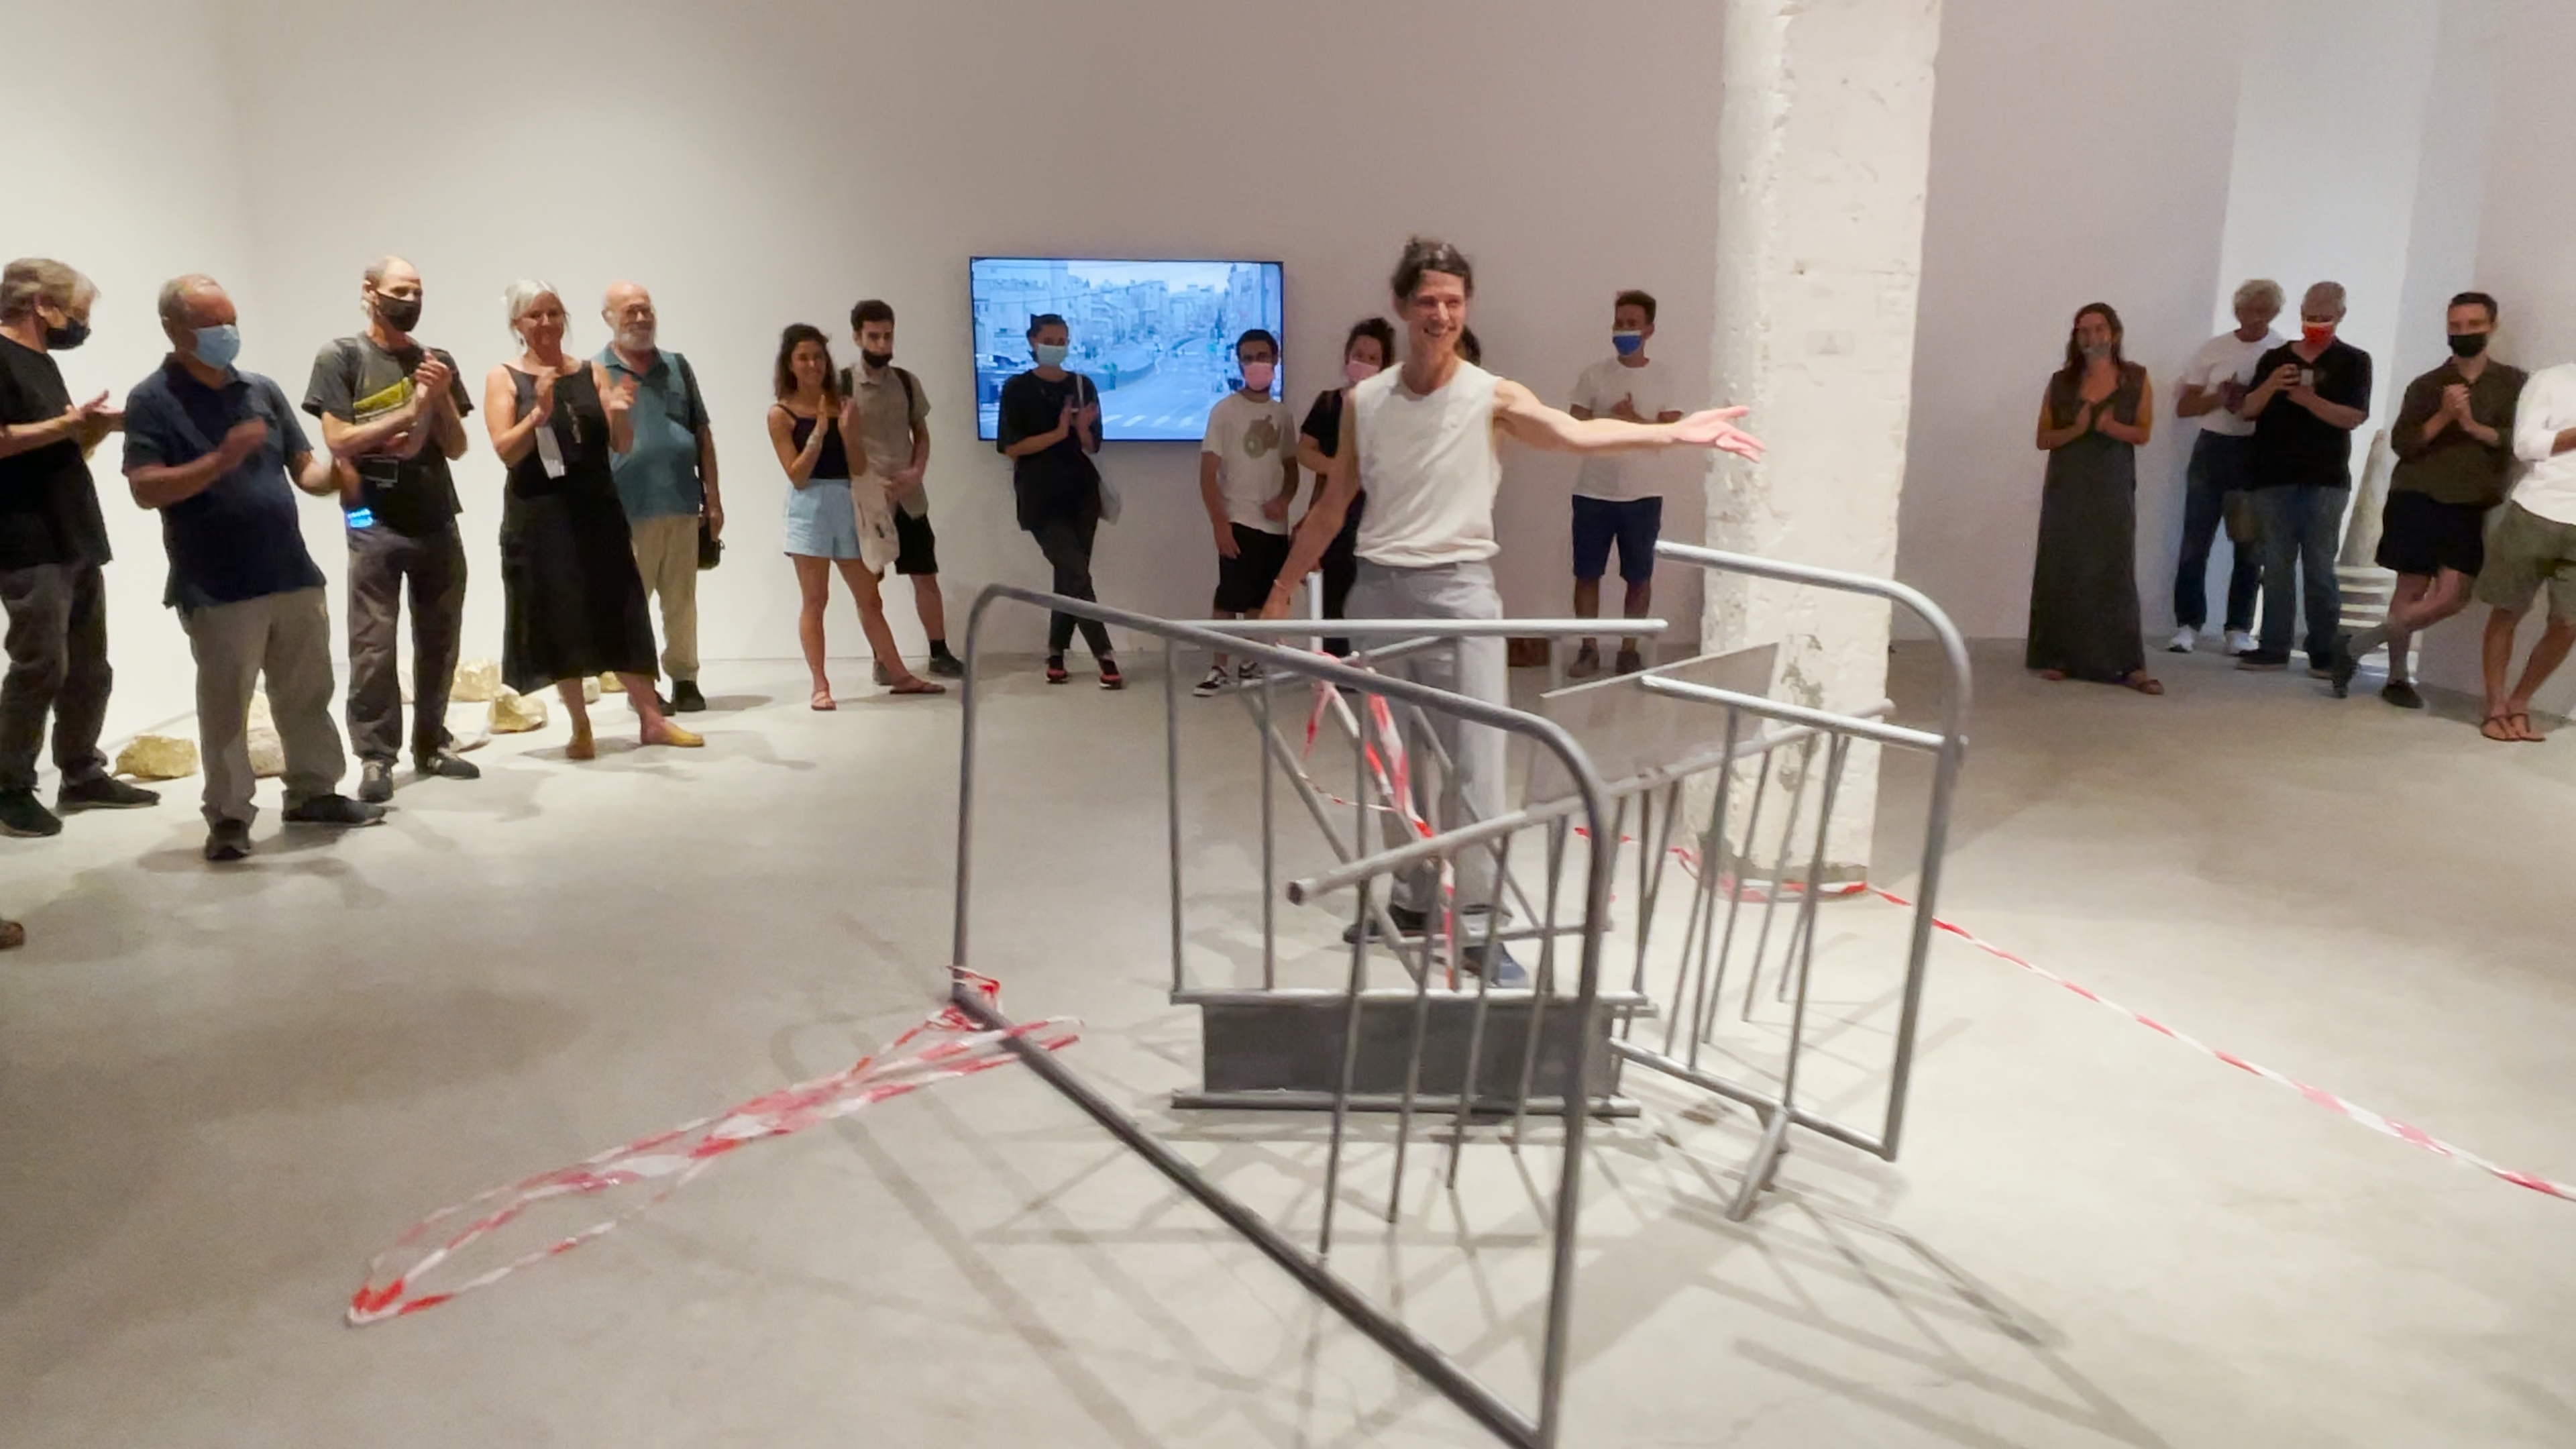 Opening night with performance by Iris Erez, July 8th, 2021